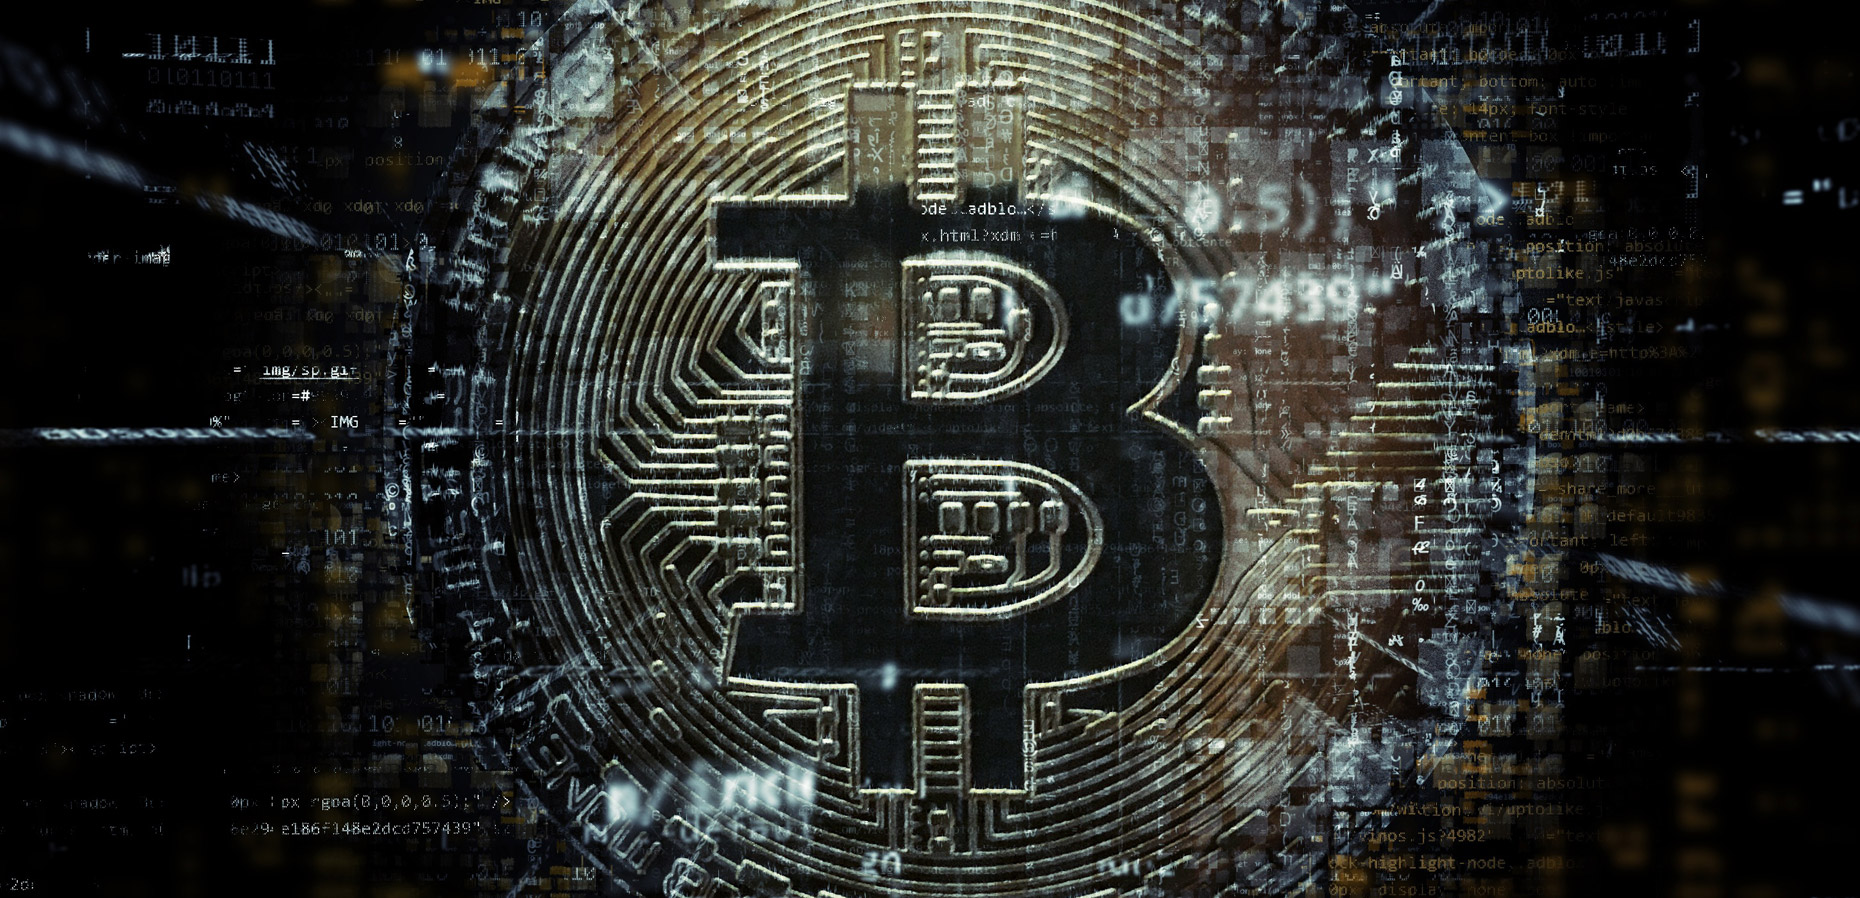 Want to bet on bitcoin? Be prepared to lose all